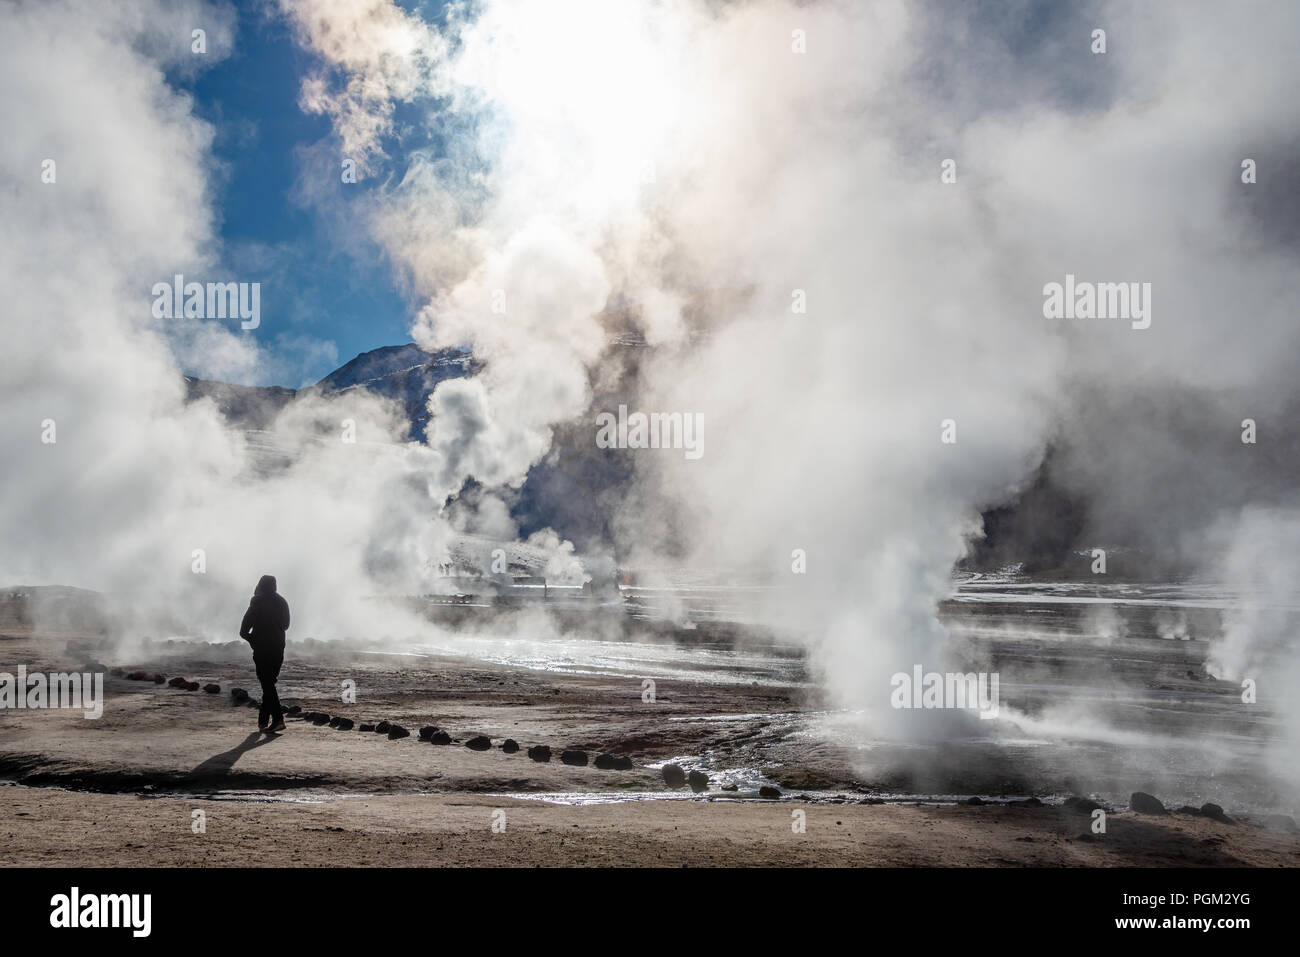 El Tatio geysers in Chile, Silhouette of a woman walking among the steams and fumaroles at sunrise - Stock Image